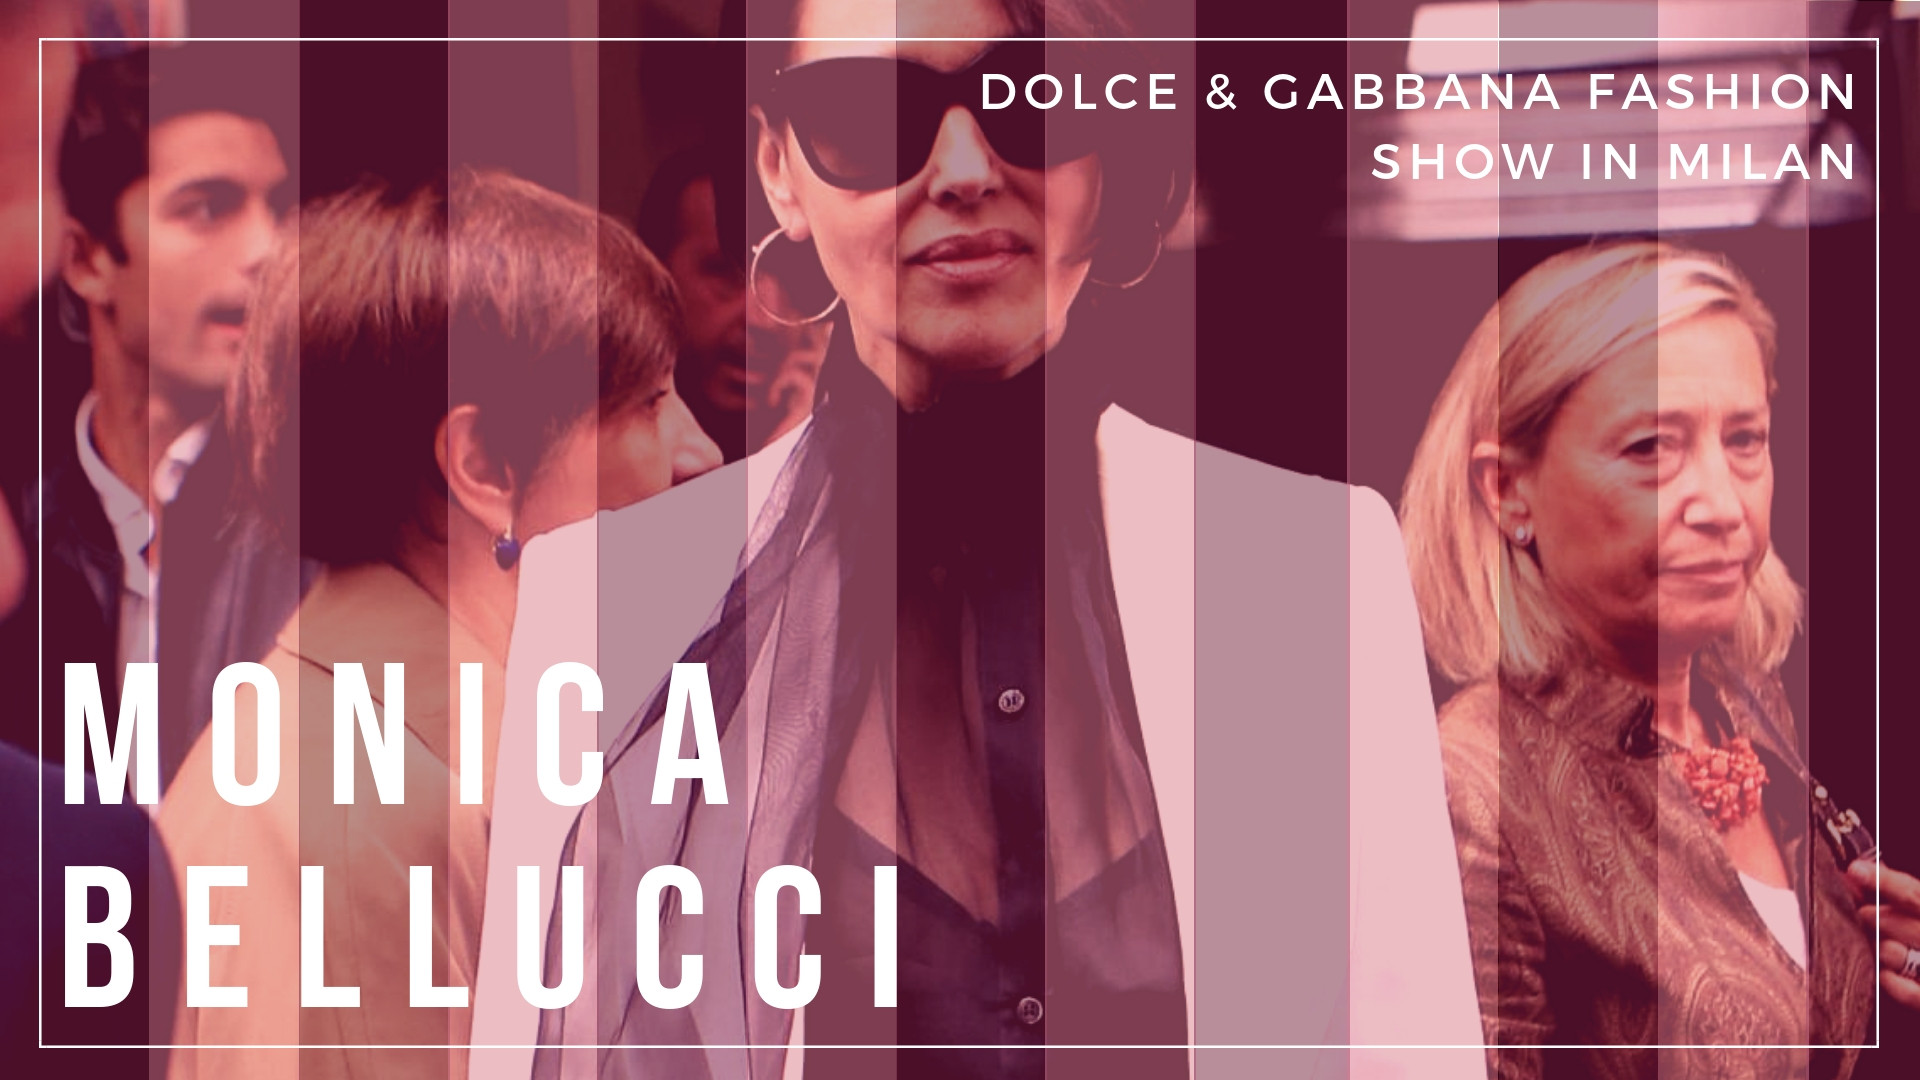 Monica Bellucci - Dolce & Gabanna Fashion Show - Sexy Actress Pictures | Hot Actress Pictures - ActressSnaps.com